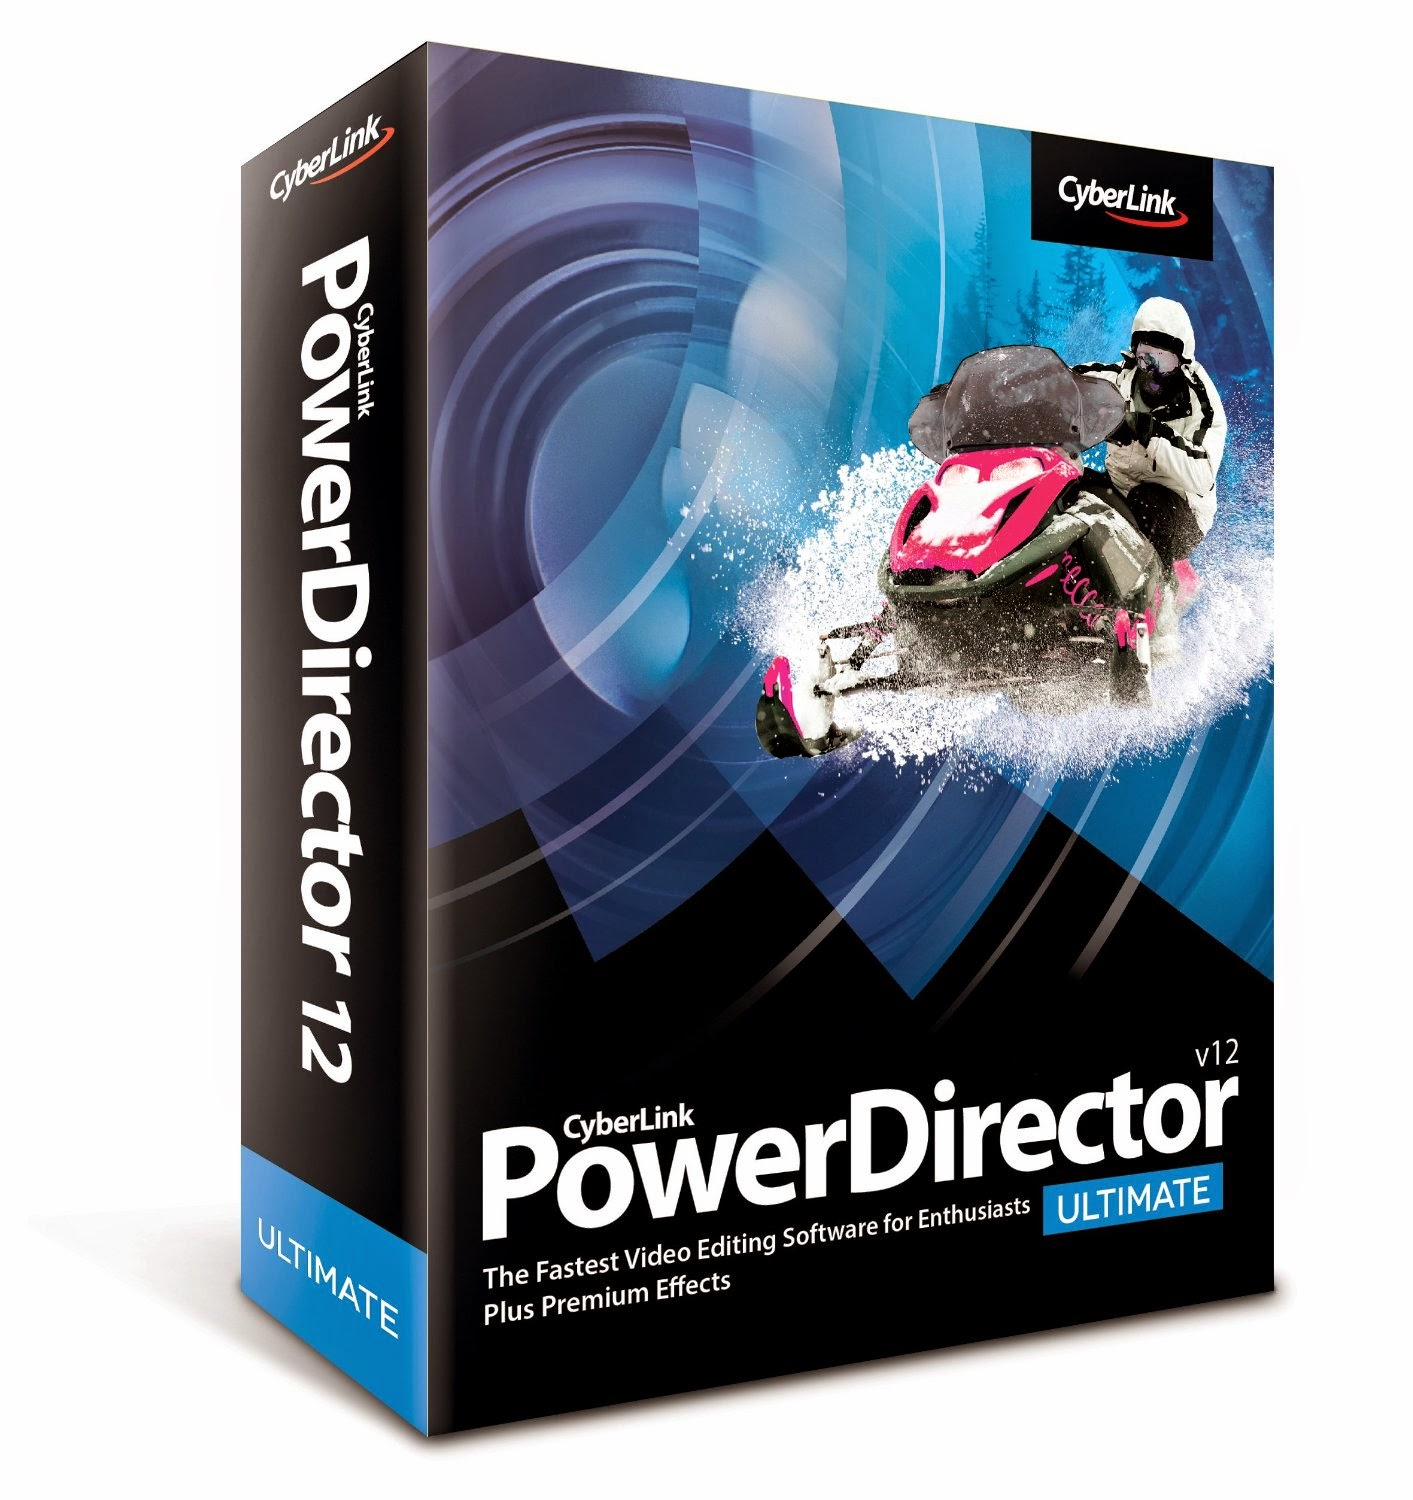 cyberlink power director 12 deluxe